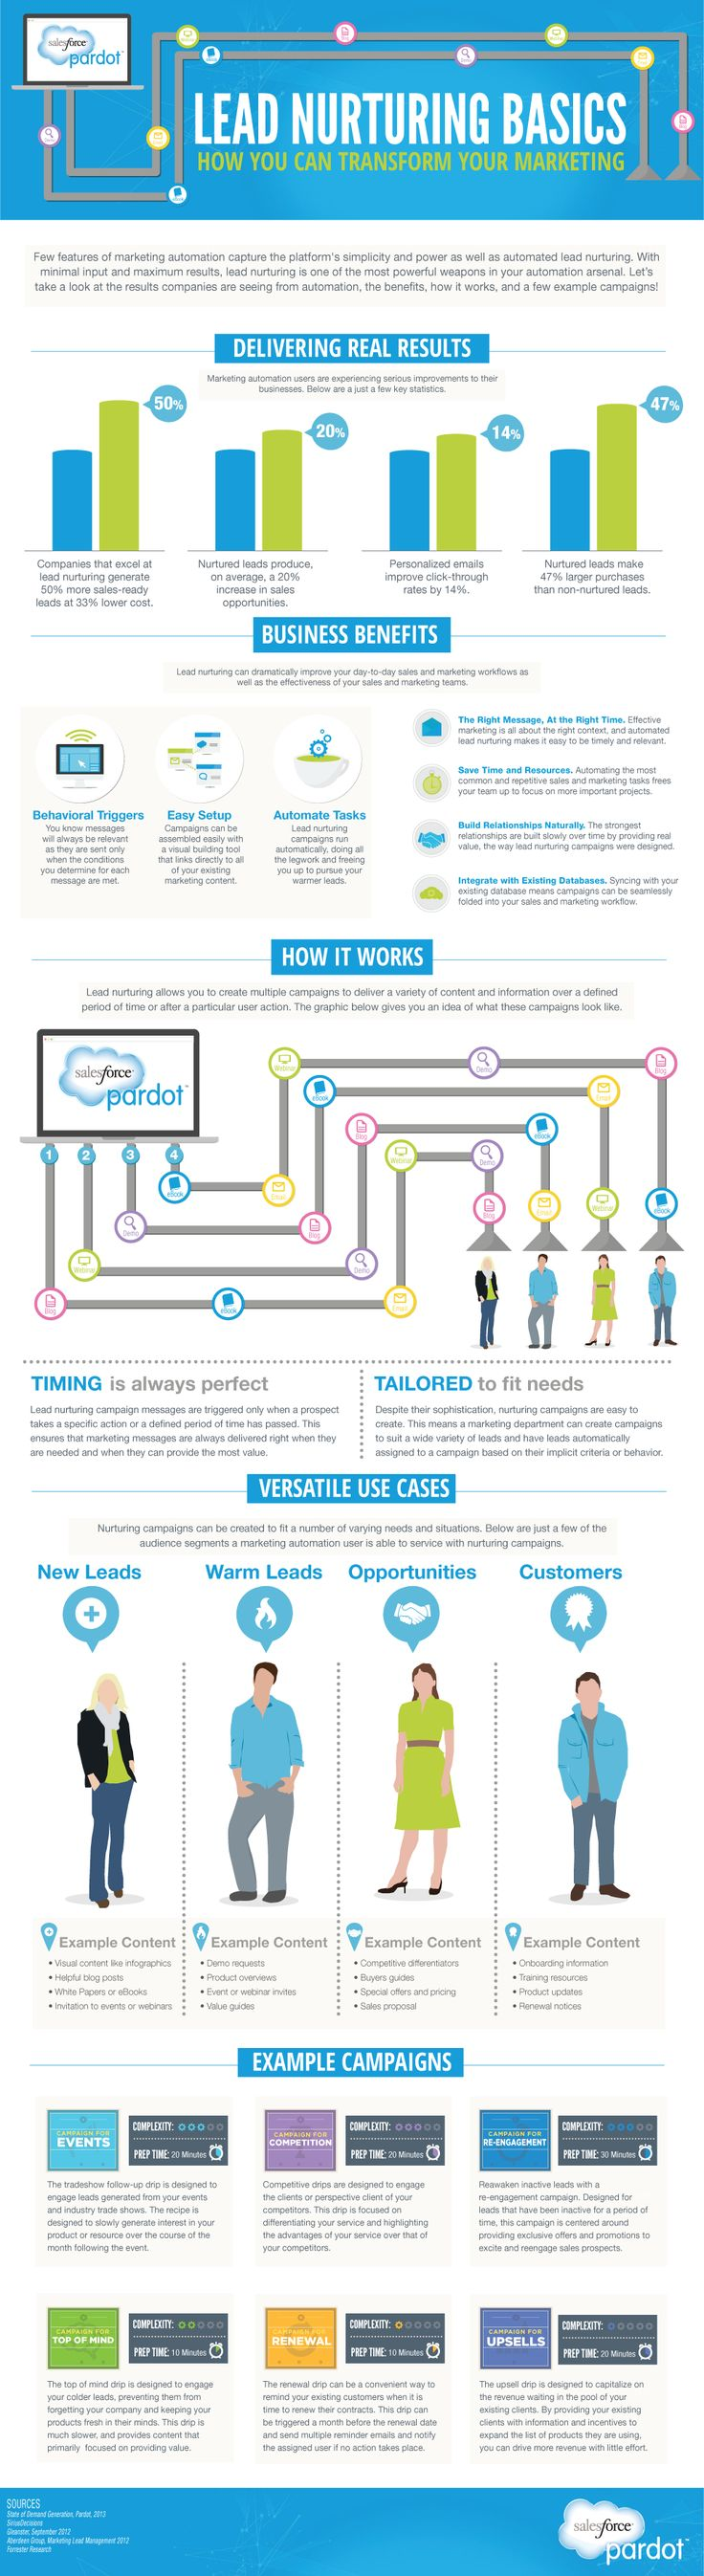 Automated lead nurturing can put the nurturing process on autopilot and notify you when leads are in a sales-ready state. With such intelligent functionality, behavioral triggers, and easy setup, nurturing can build valuable customer relationships on a massive scale. This #infographic will walk you through the basics of lead nurturing and what it can offer your company. Get the complete guide: http://www.pardot.com/whitepapers/complete-guide-lead-nurturing/